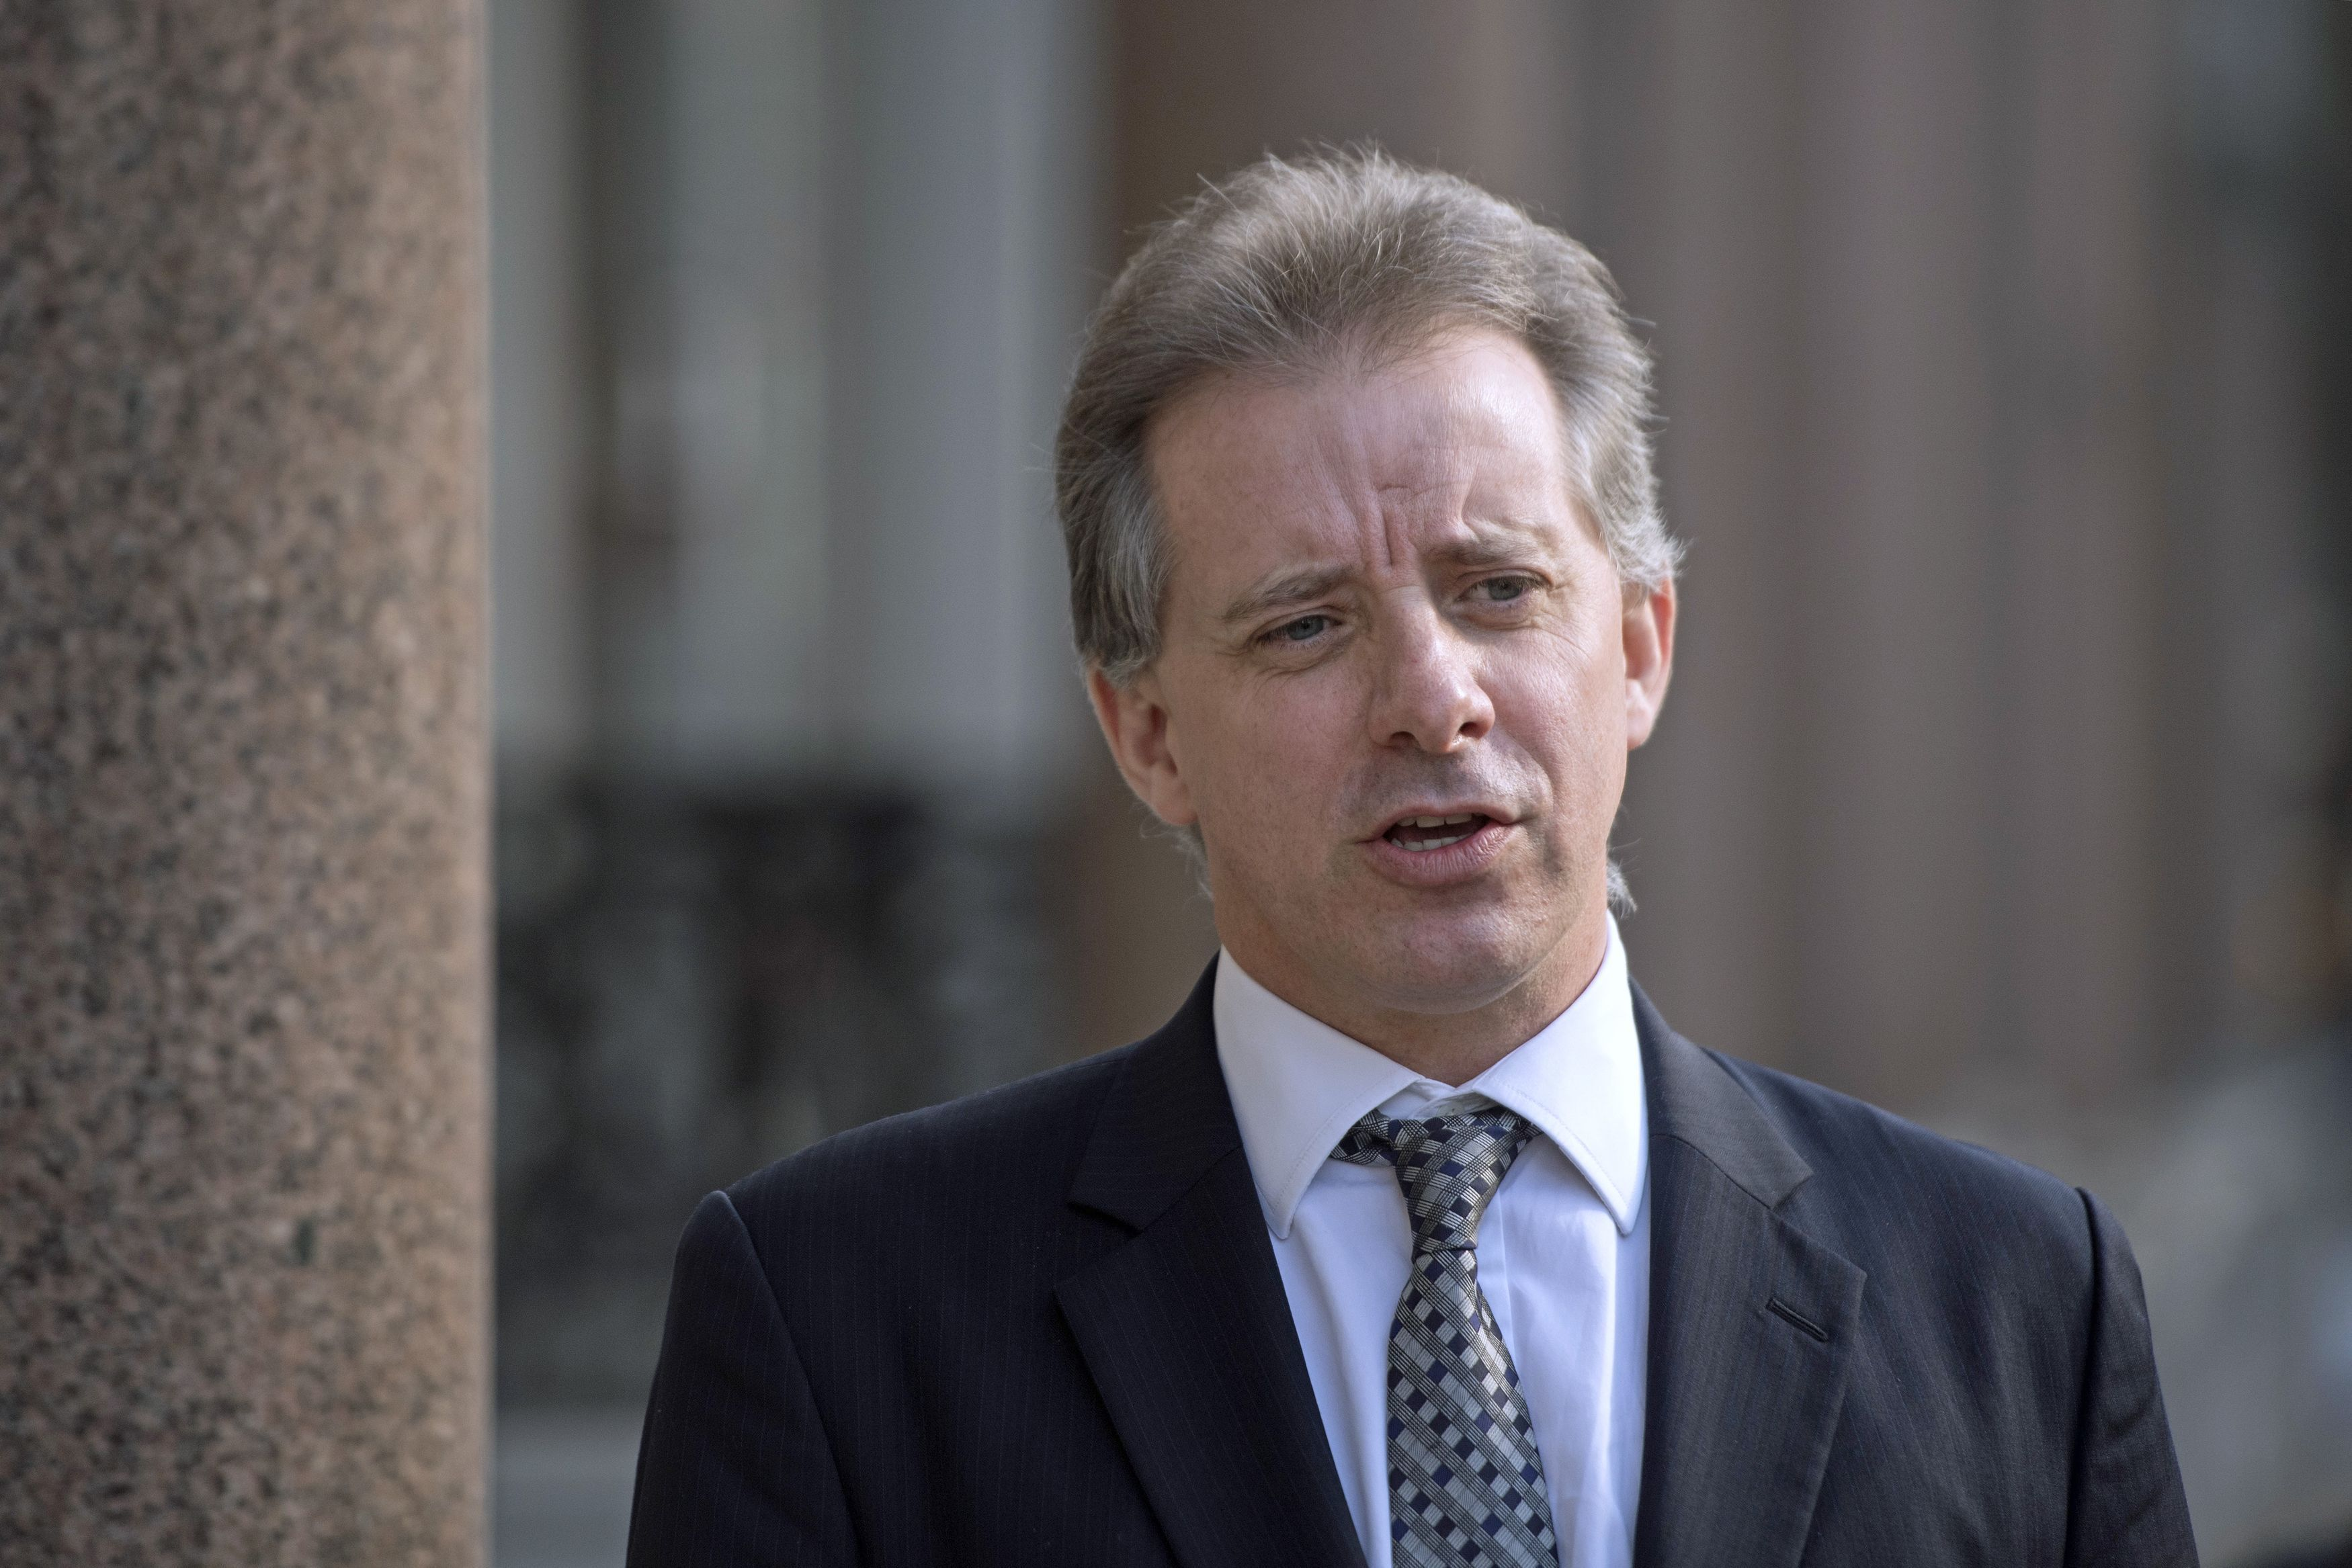 Anti-Trump dossier firm did work for corrupt regimes, rights group claims